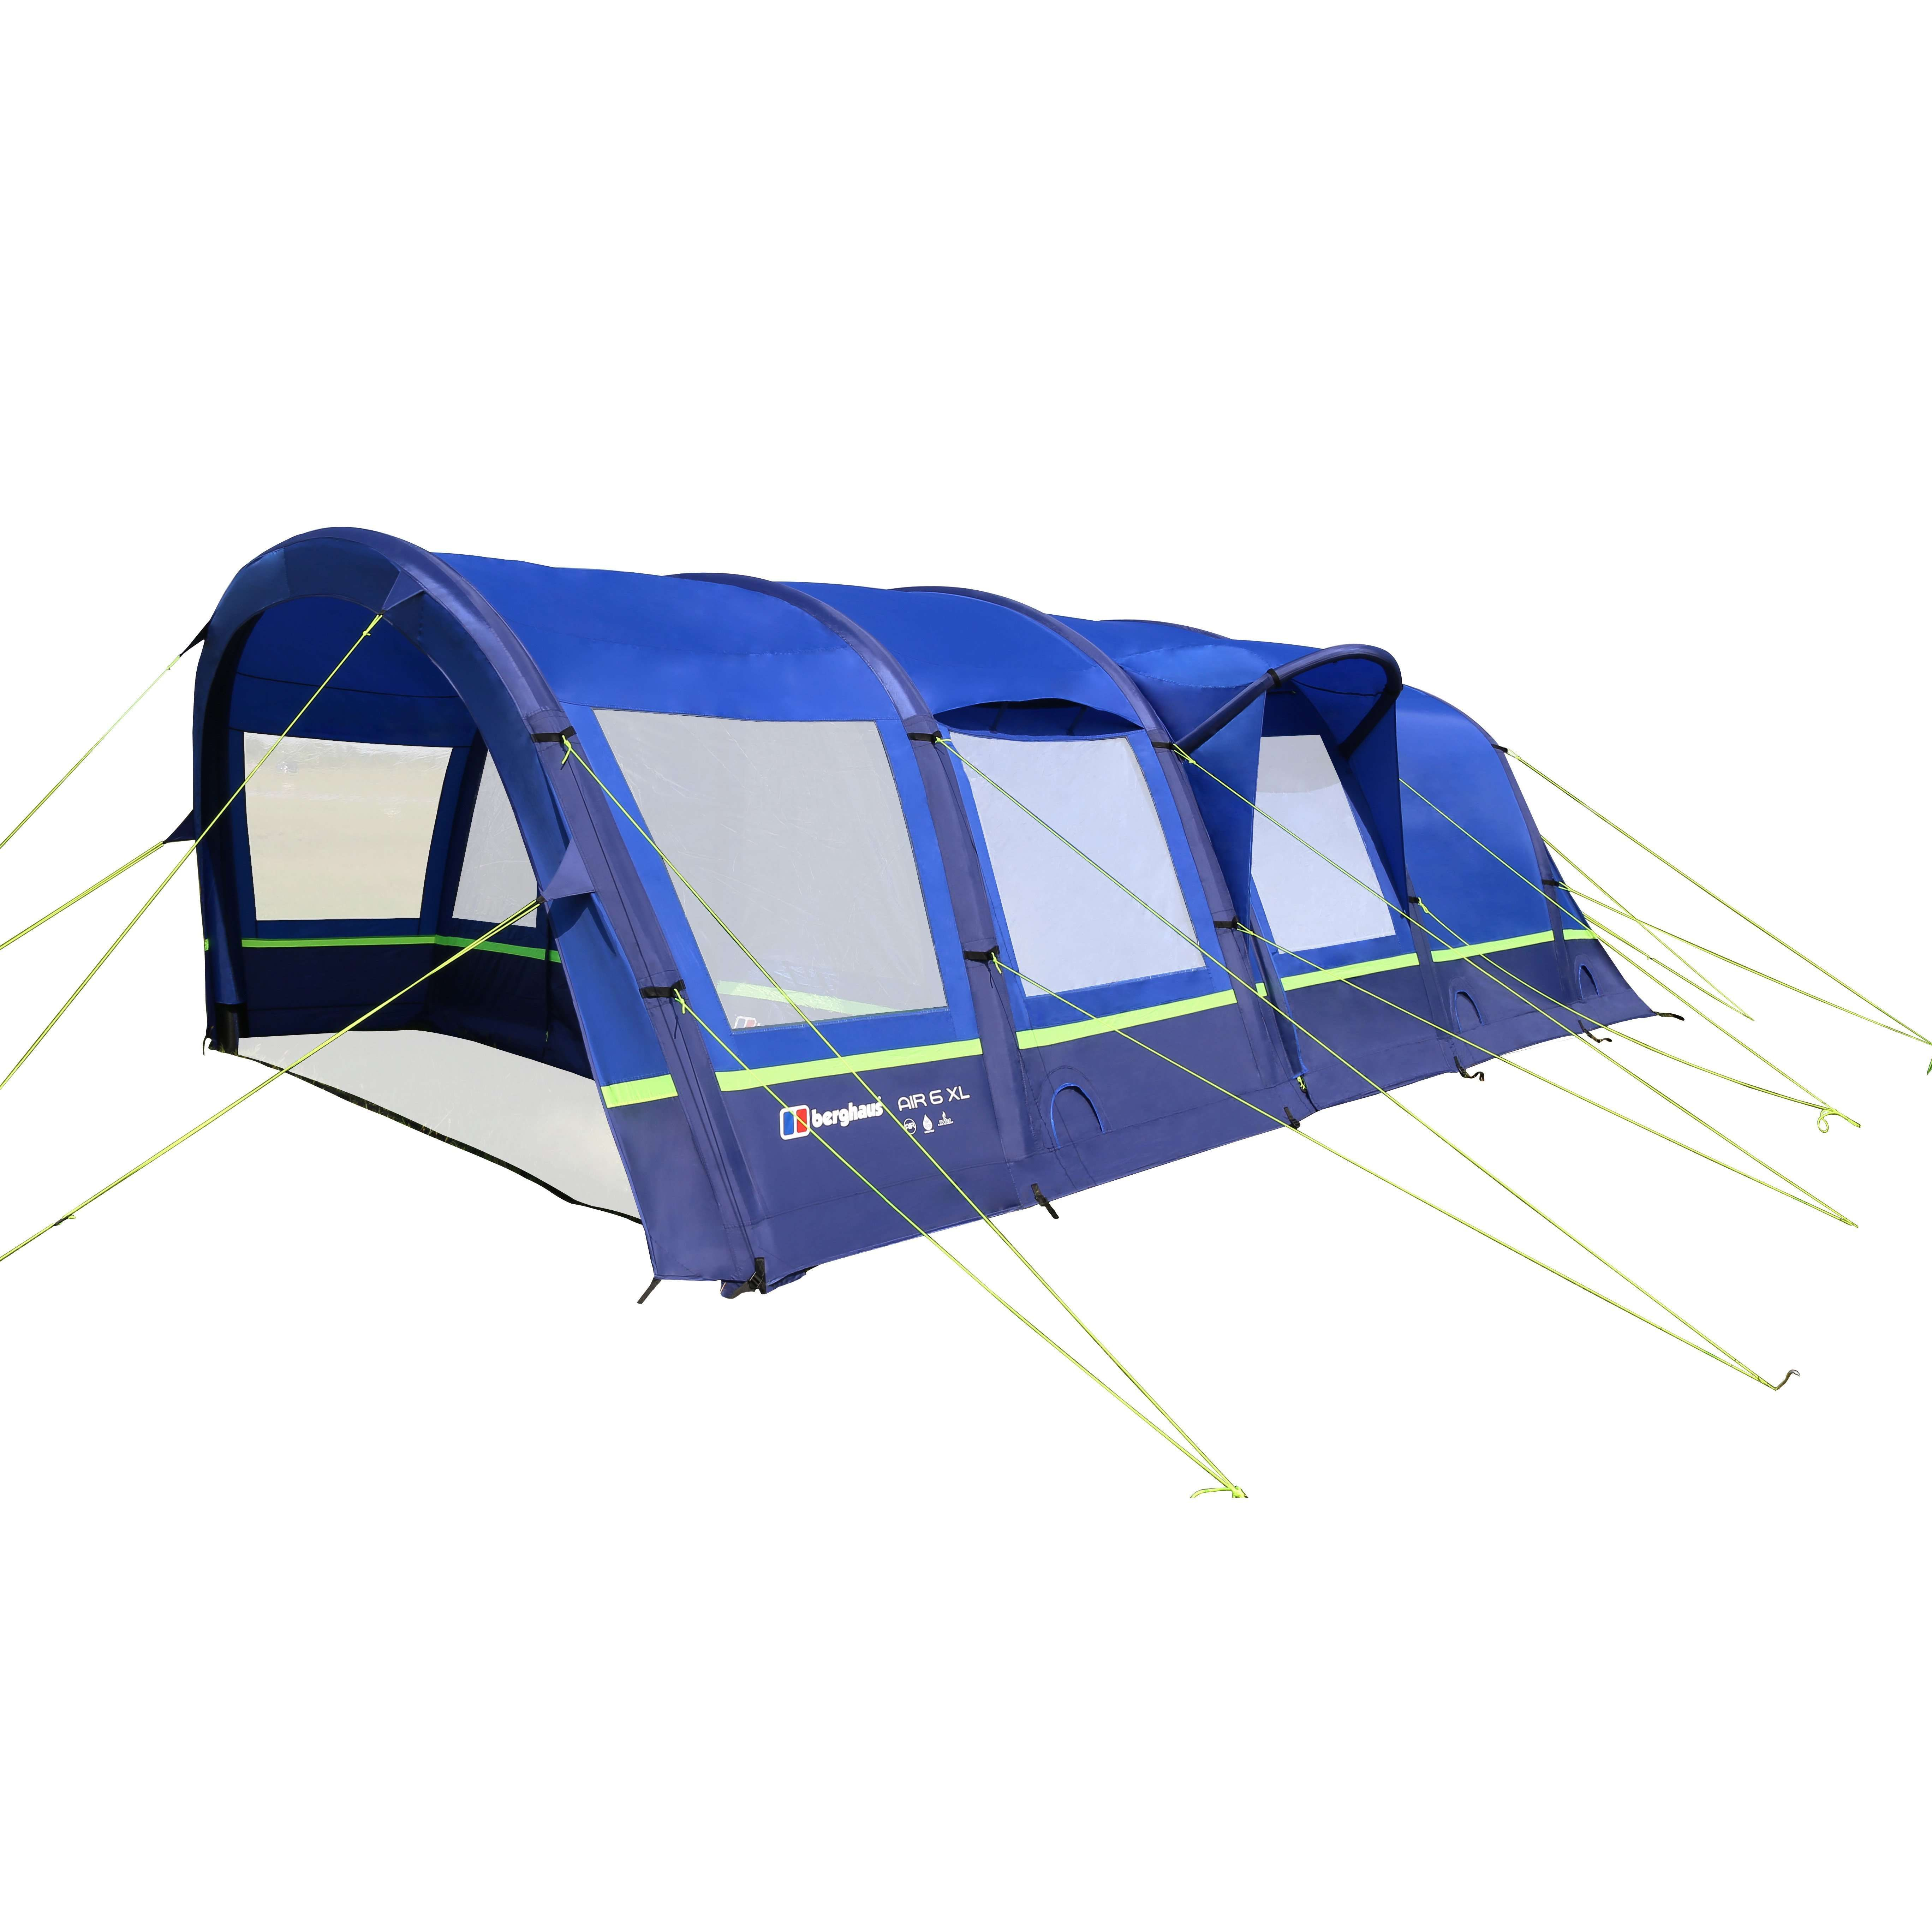 BERGHAUS Air 6XL Family Tent - find out more on our site. Millets the  sc 1 st  Pinterest & BERGHAUS Air 6XL Family Tent - find out more on our site. Millets ...